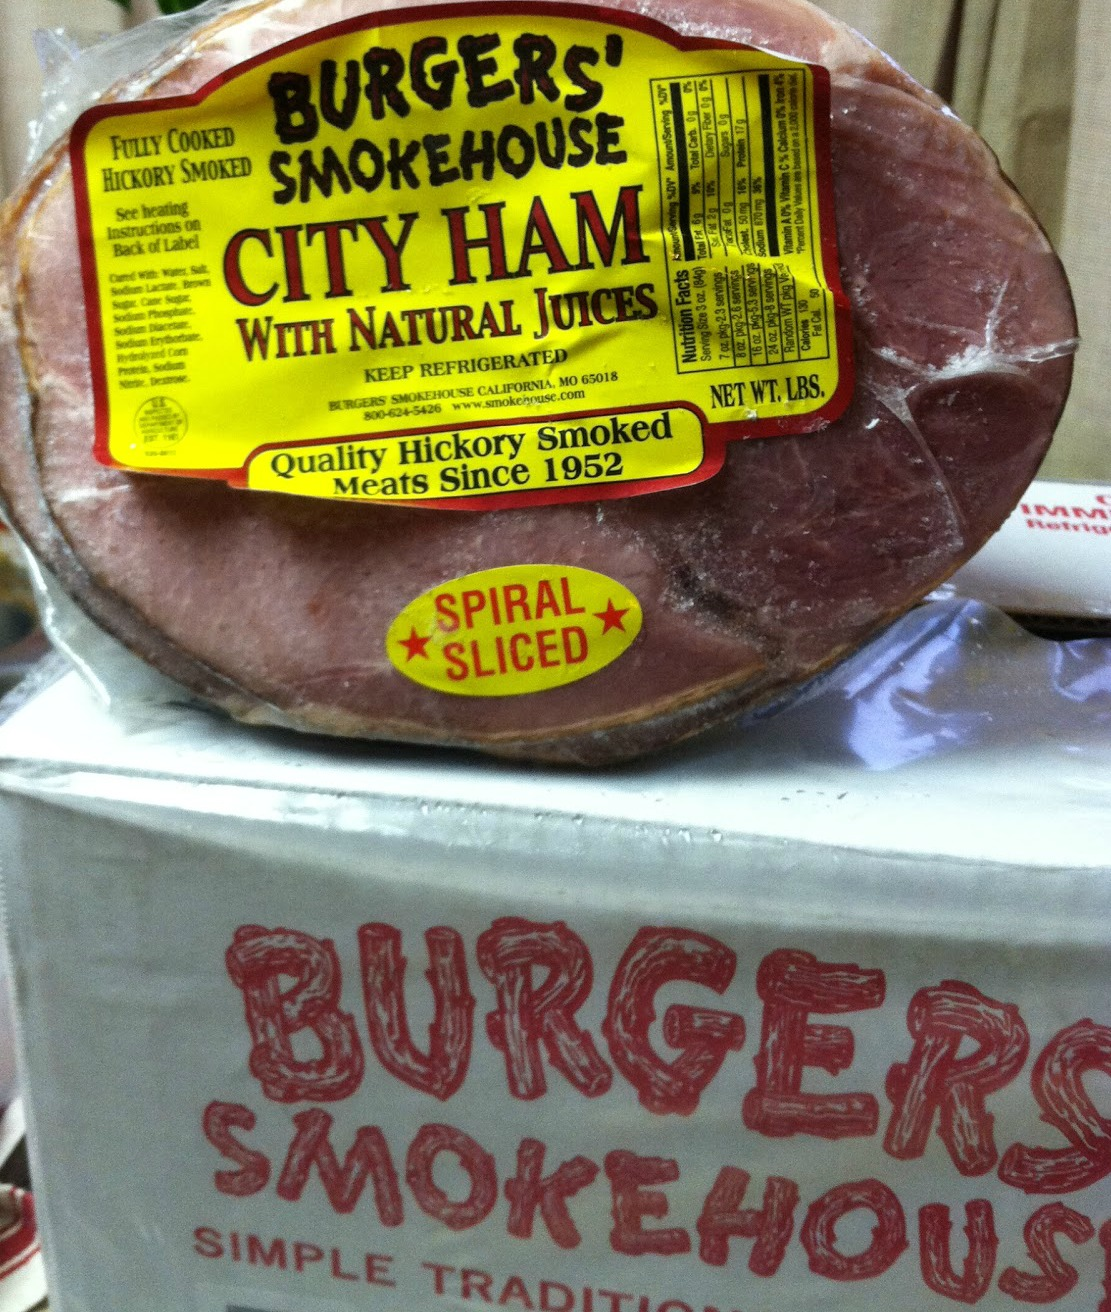 Have a Special Occasion Coming Up? Order a Burger's Smokehouse City Ham